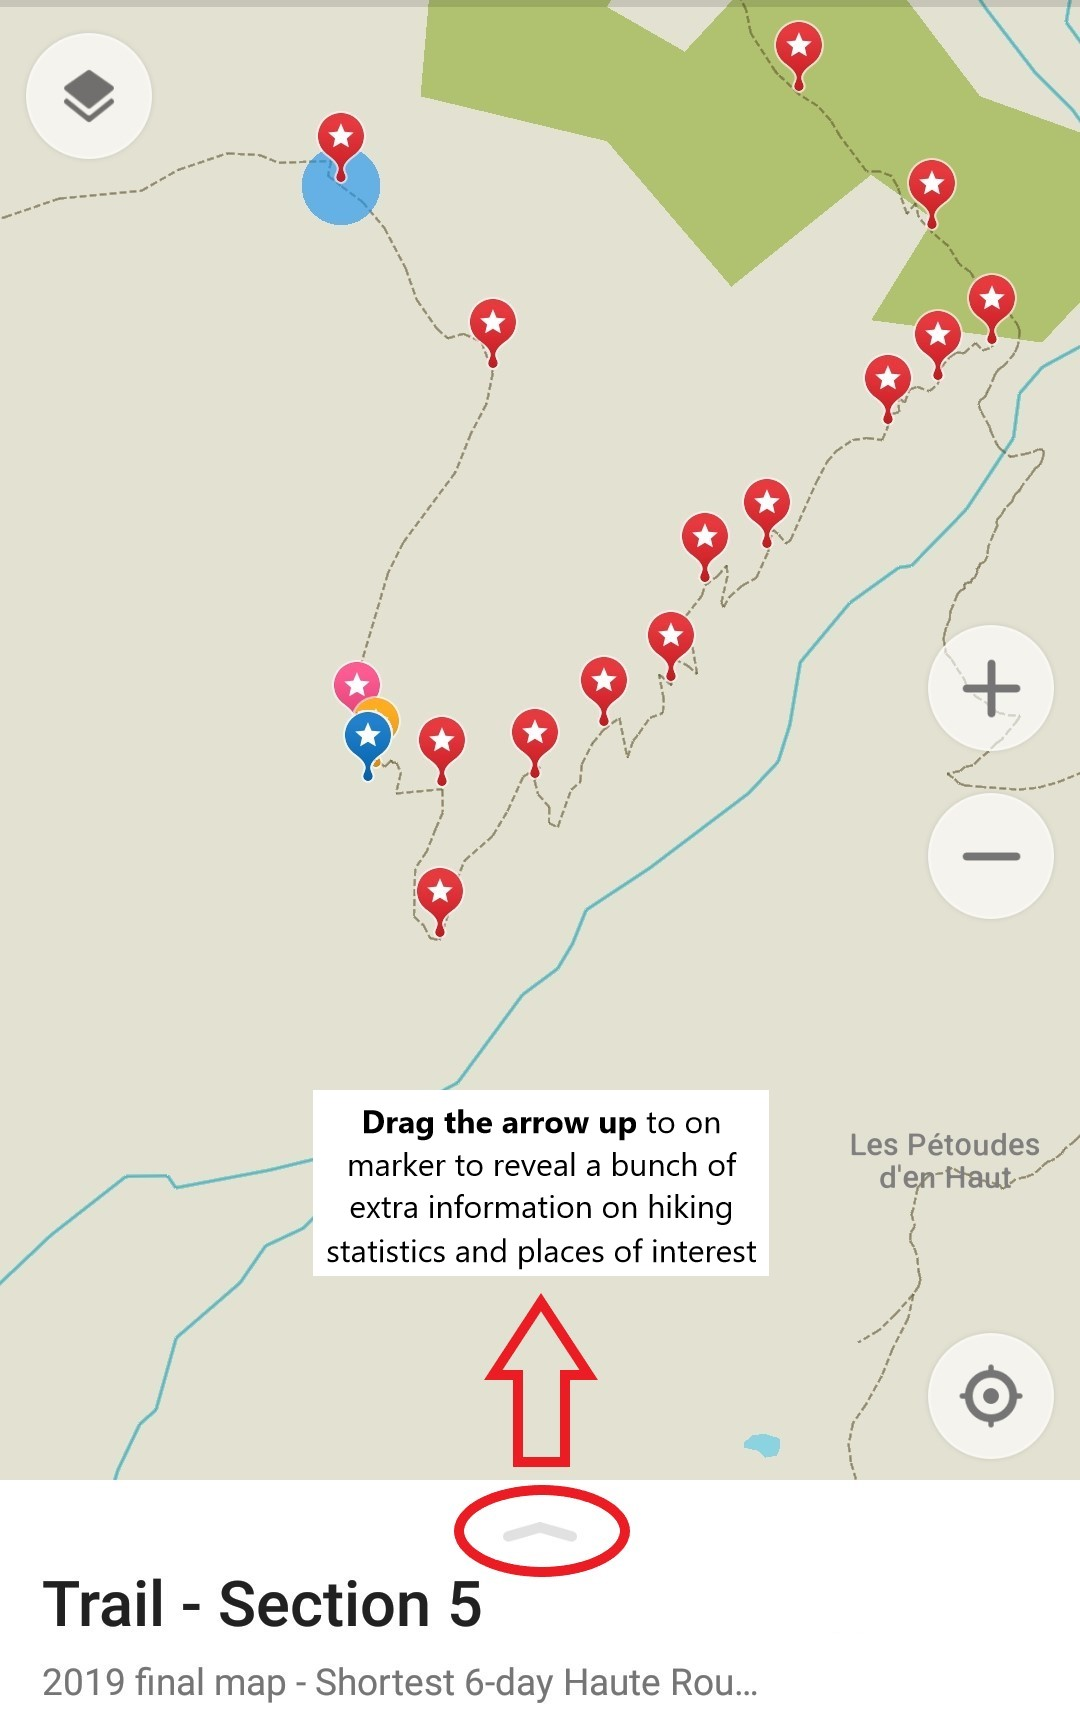 Image 20:  Click on a yellow or red trail marker and drag this arrow up to see trail information